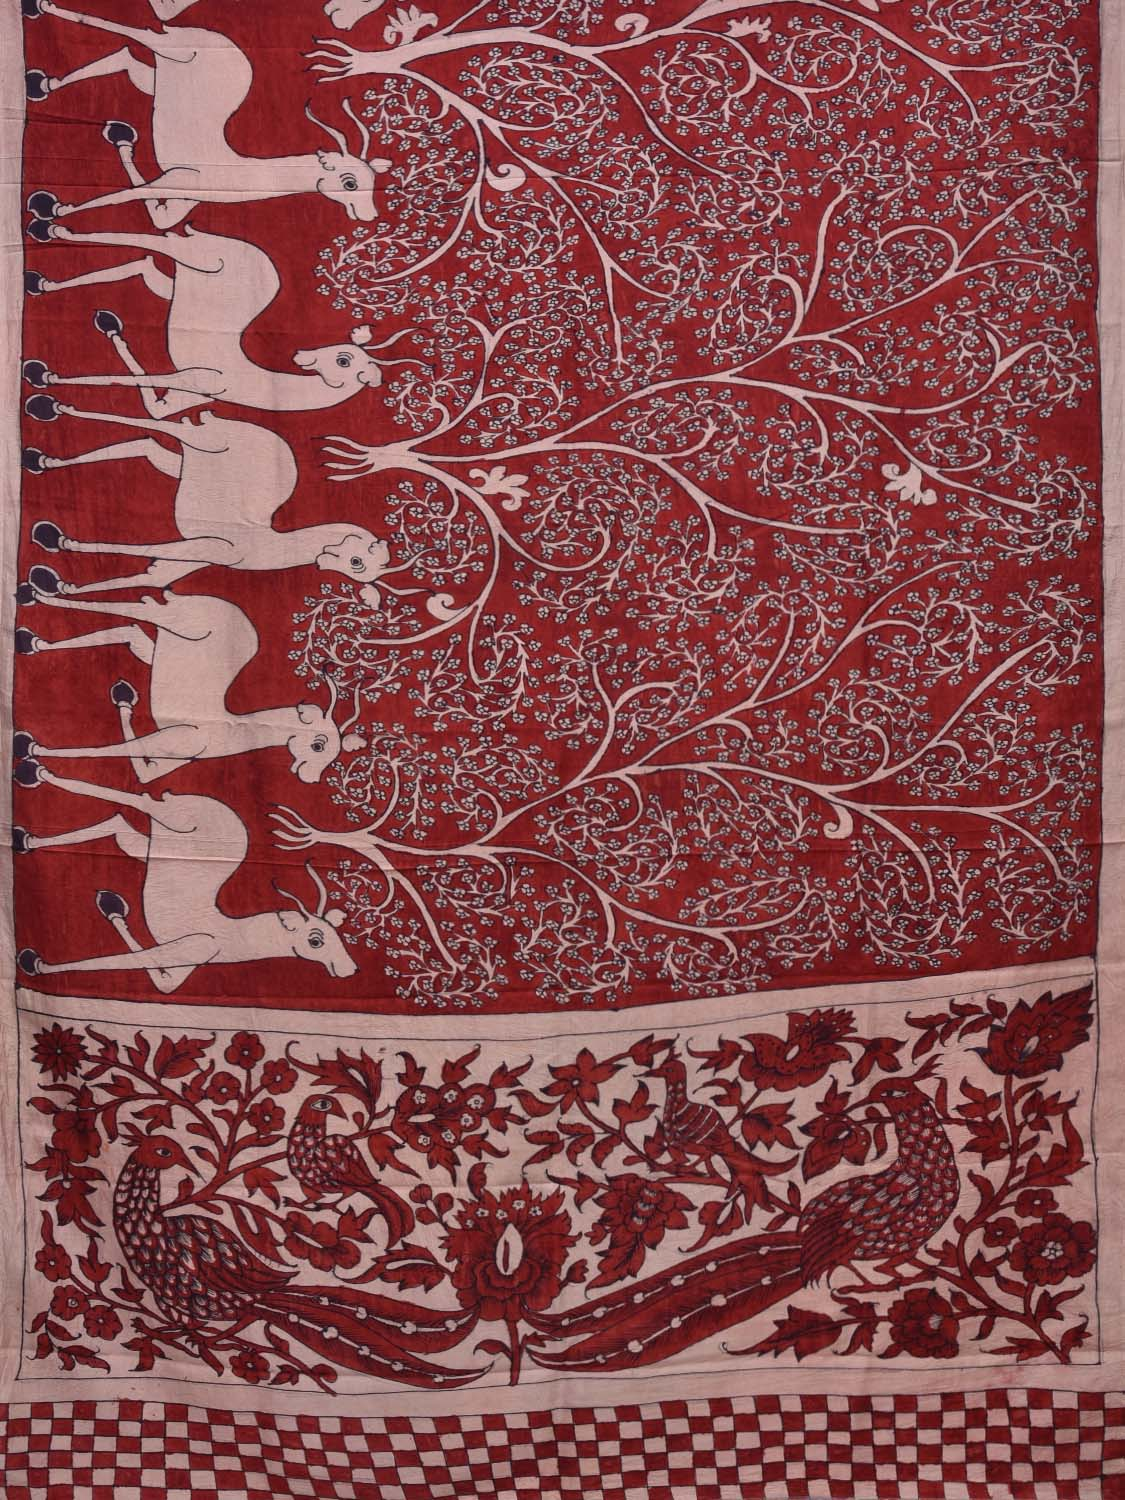 Red Kalamkari Hand Painted Silk Handloom Saree with Trees and Deers Border Design kl0207